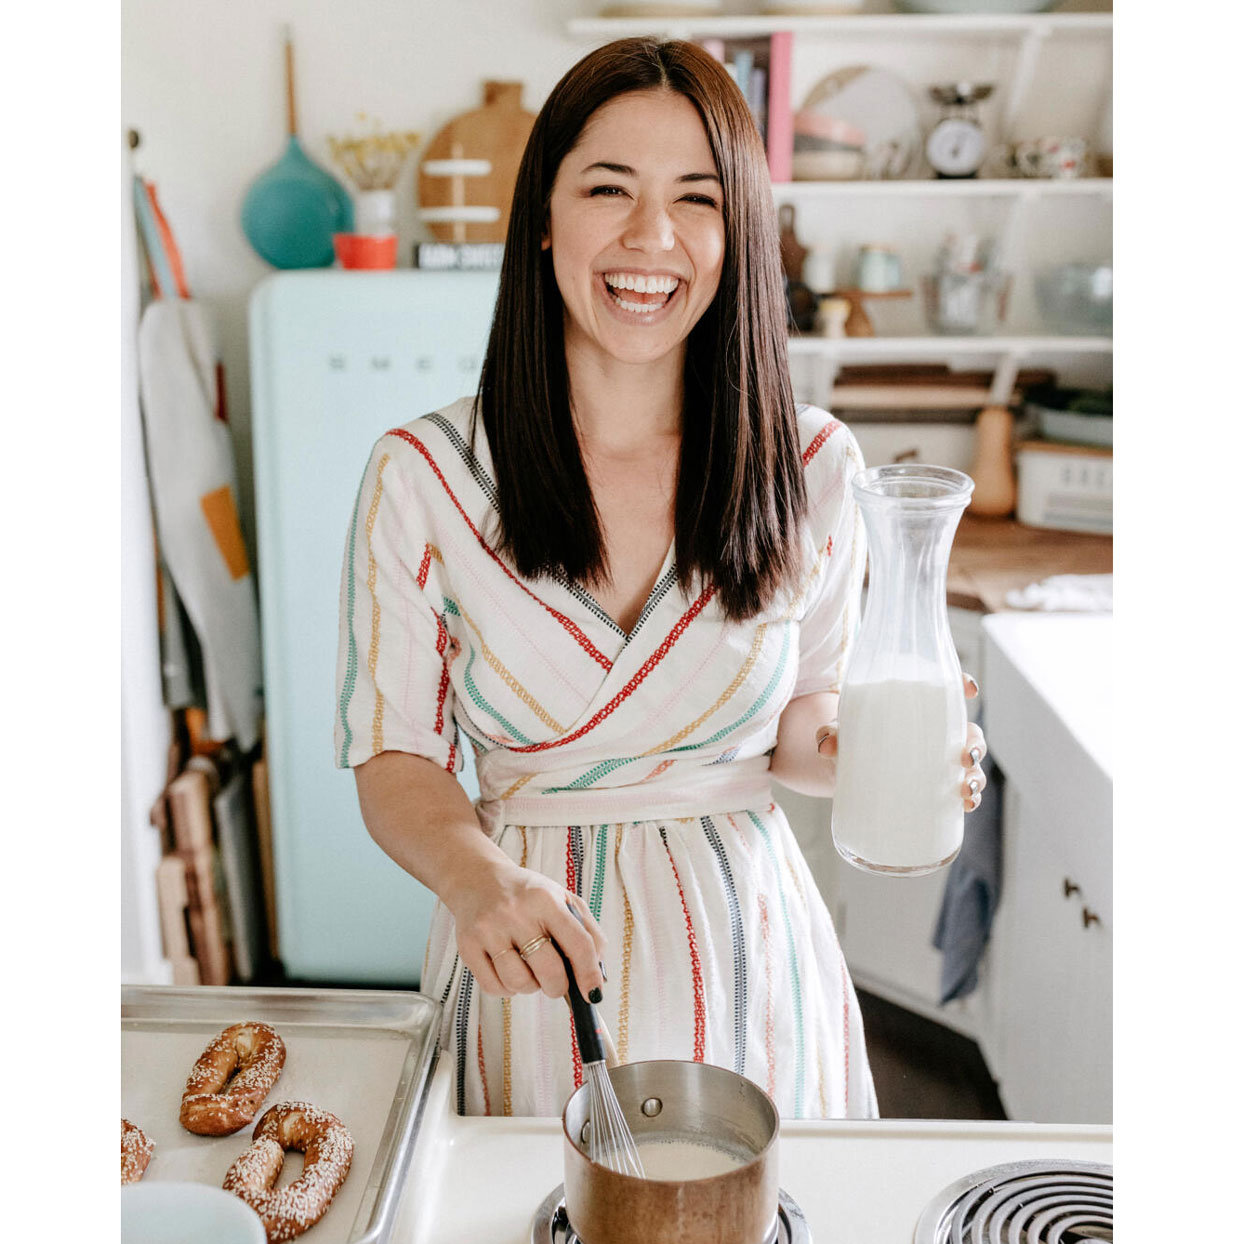 Molly Yeh cooking